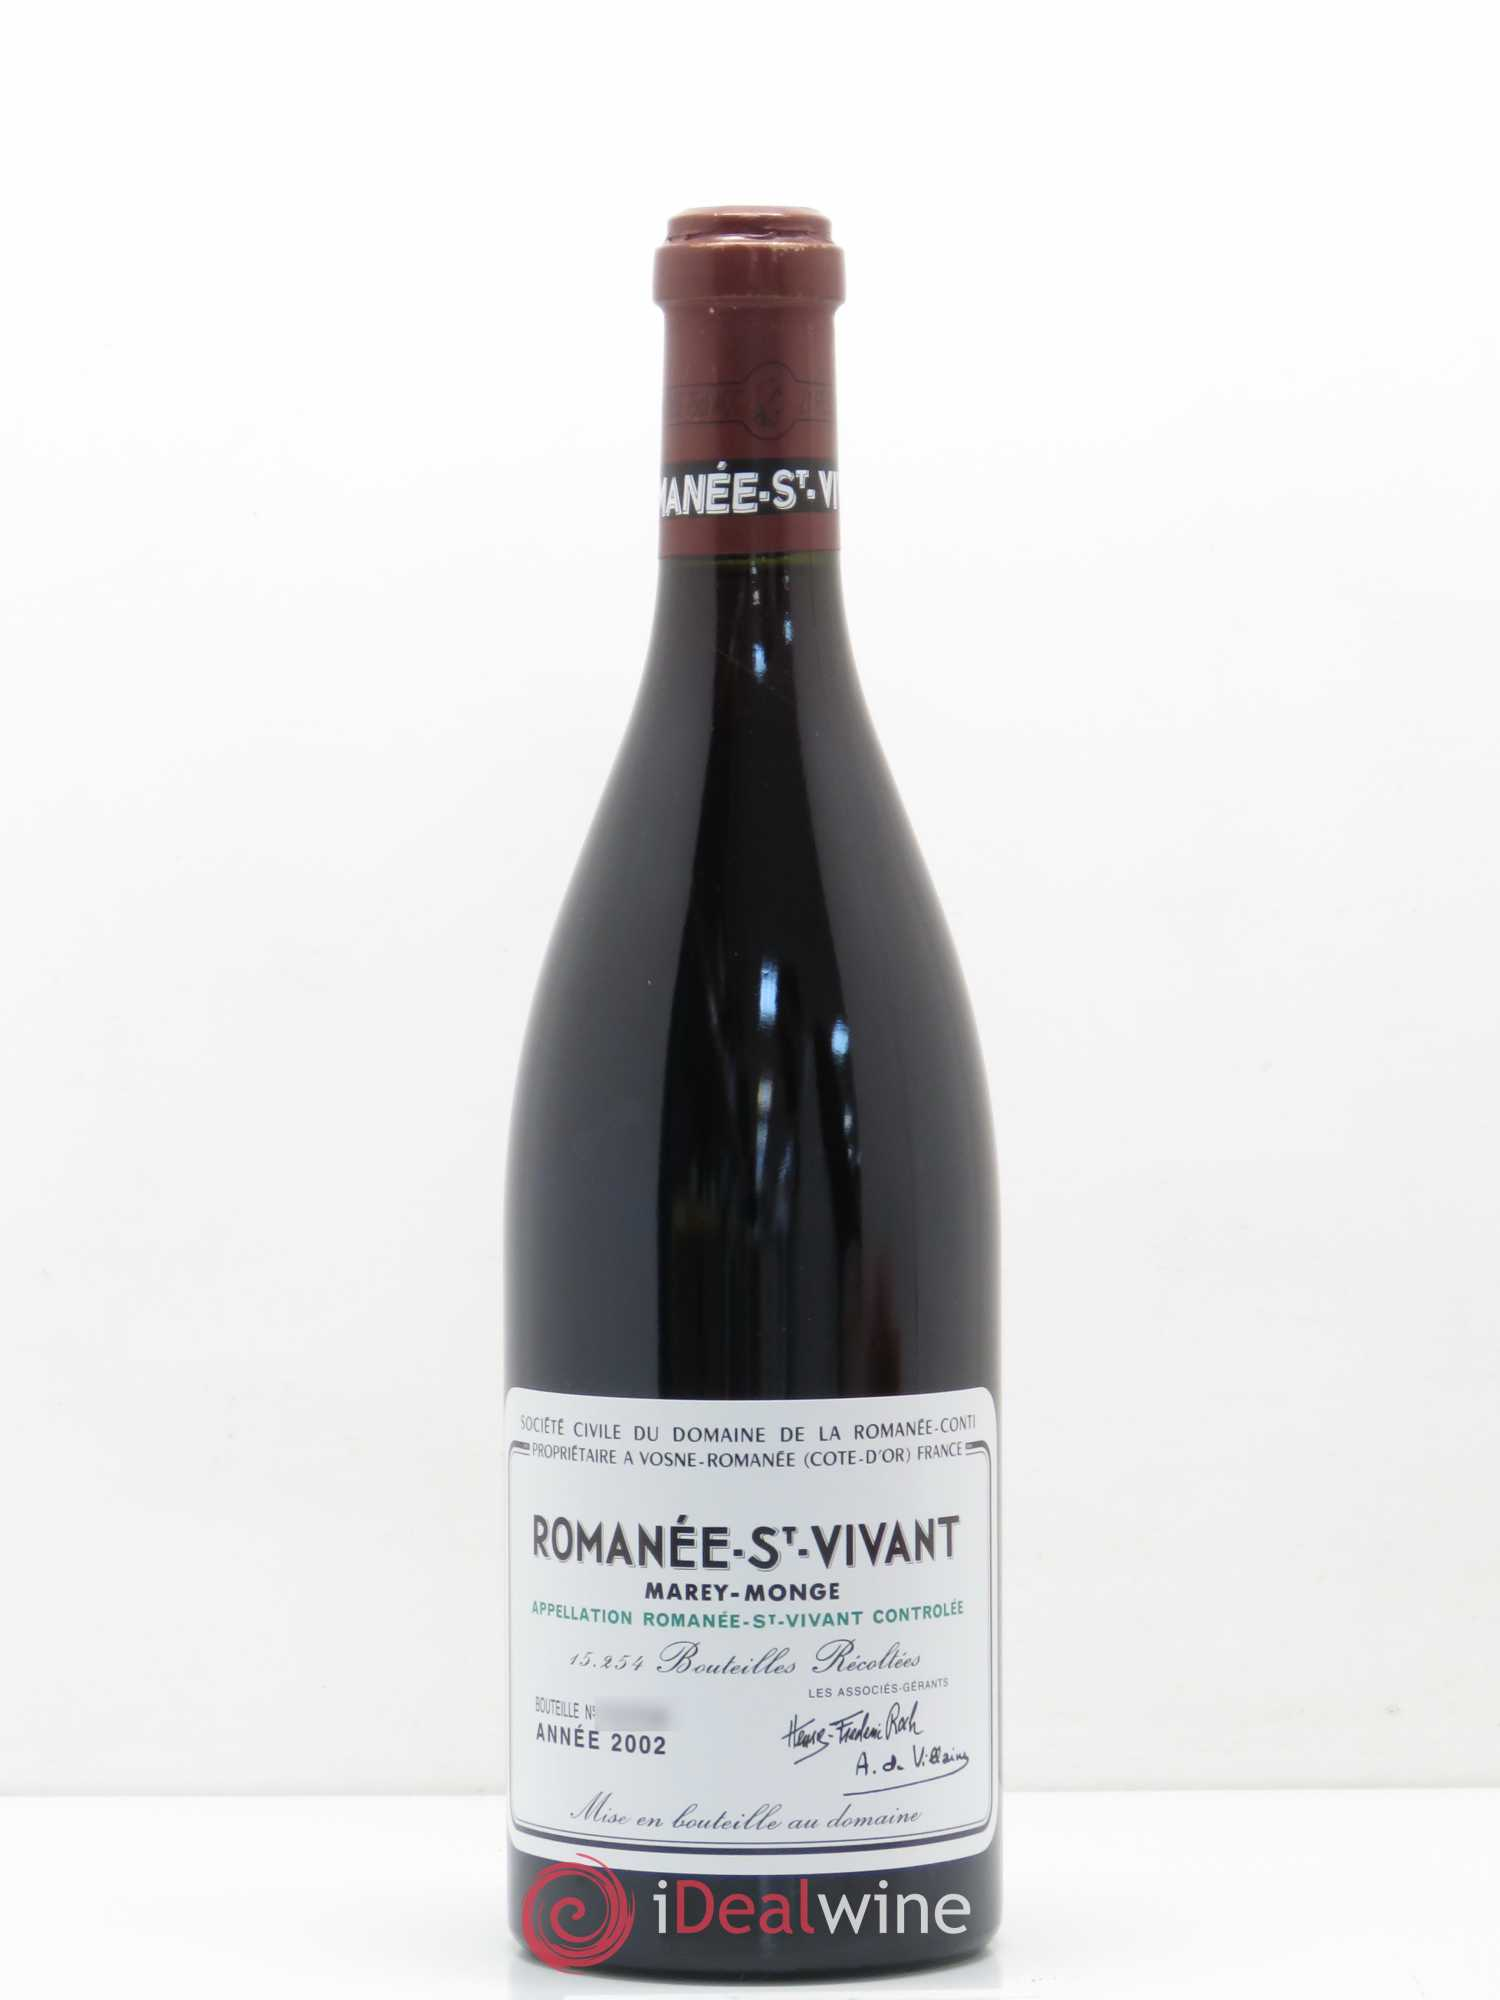 Romanée-Saint-Vivant Grand Cru Domaine de la Romanée-Conti  2002 - Lot of 1 Bottle